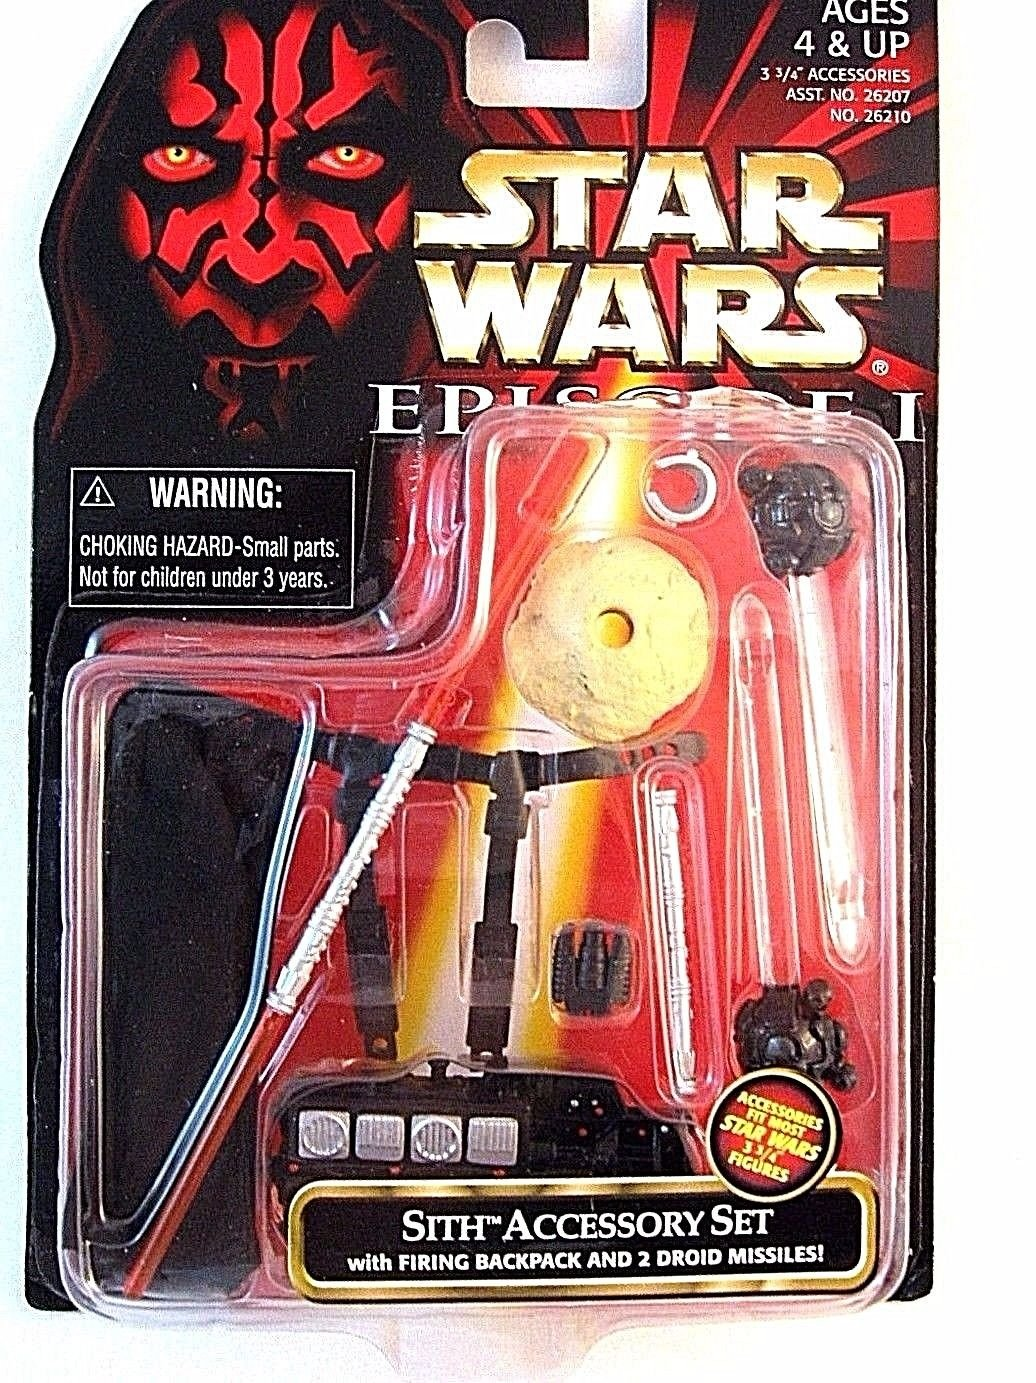 STAR WARS ACCESSORY SET CARDED SITH WITH FIRING BACKPACK AND 2 DROID MISSILES